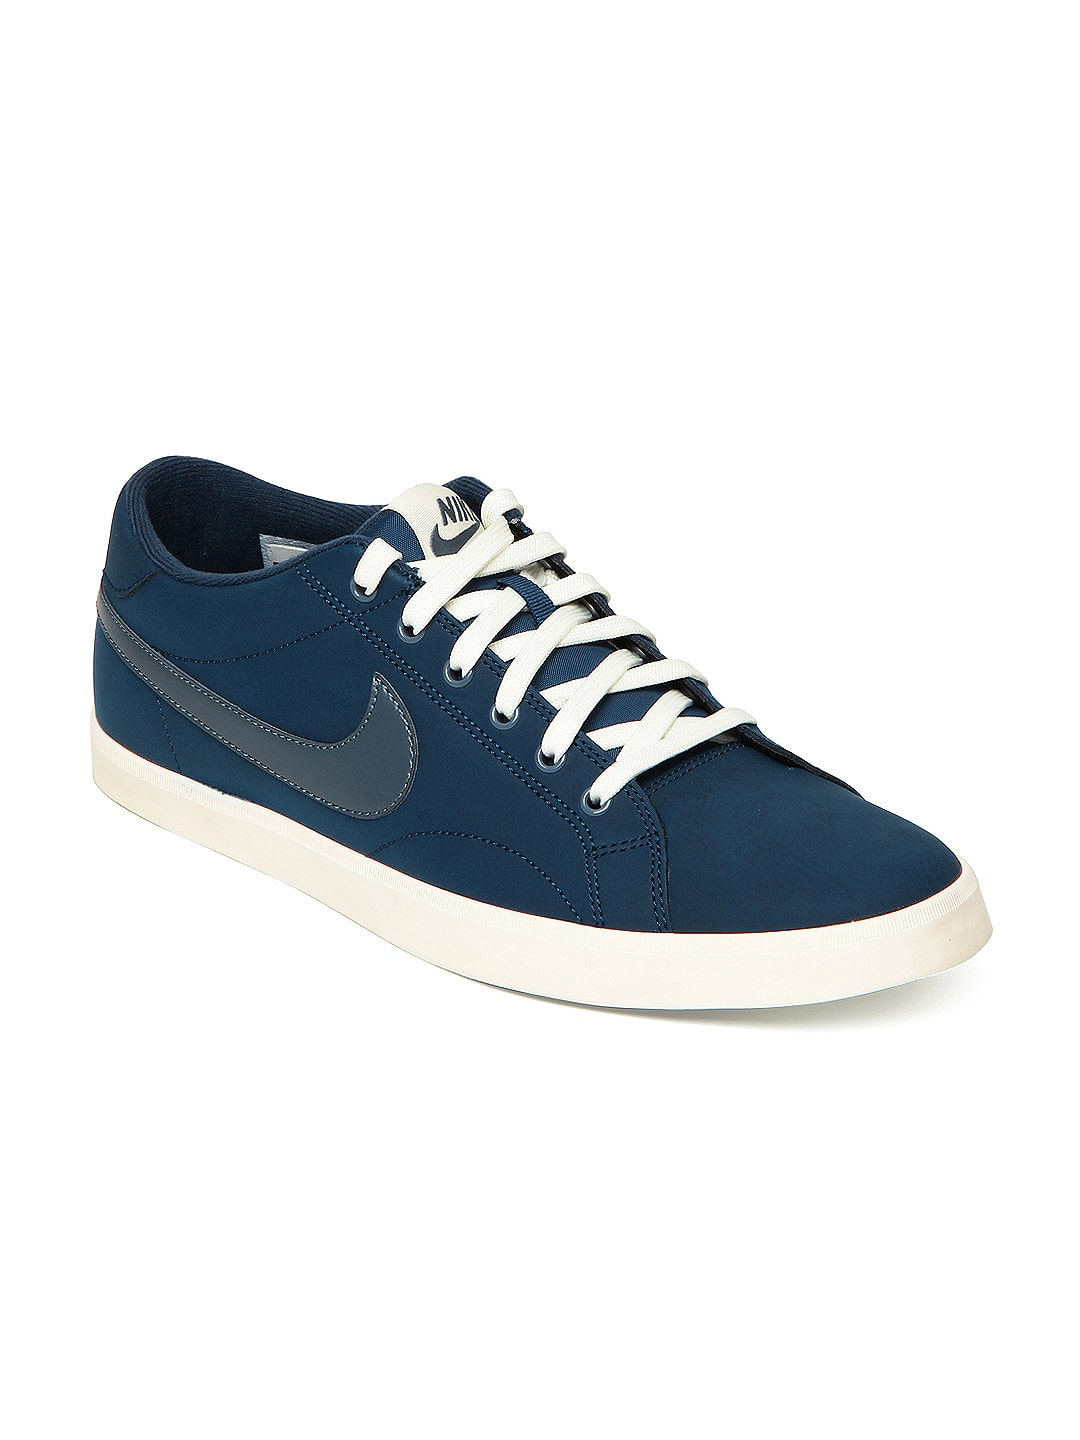 New Gallery For Nike Shoes For Women 2013 Casual Fashion39s Feel  1185x676